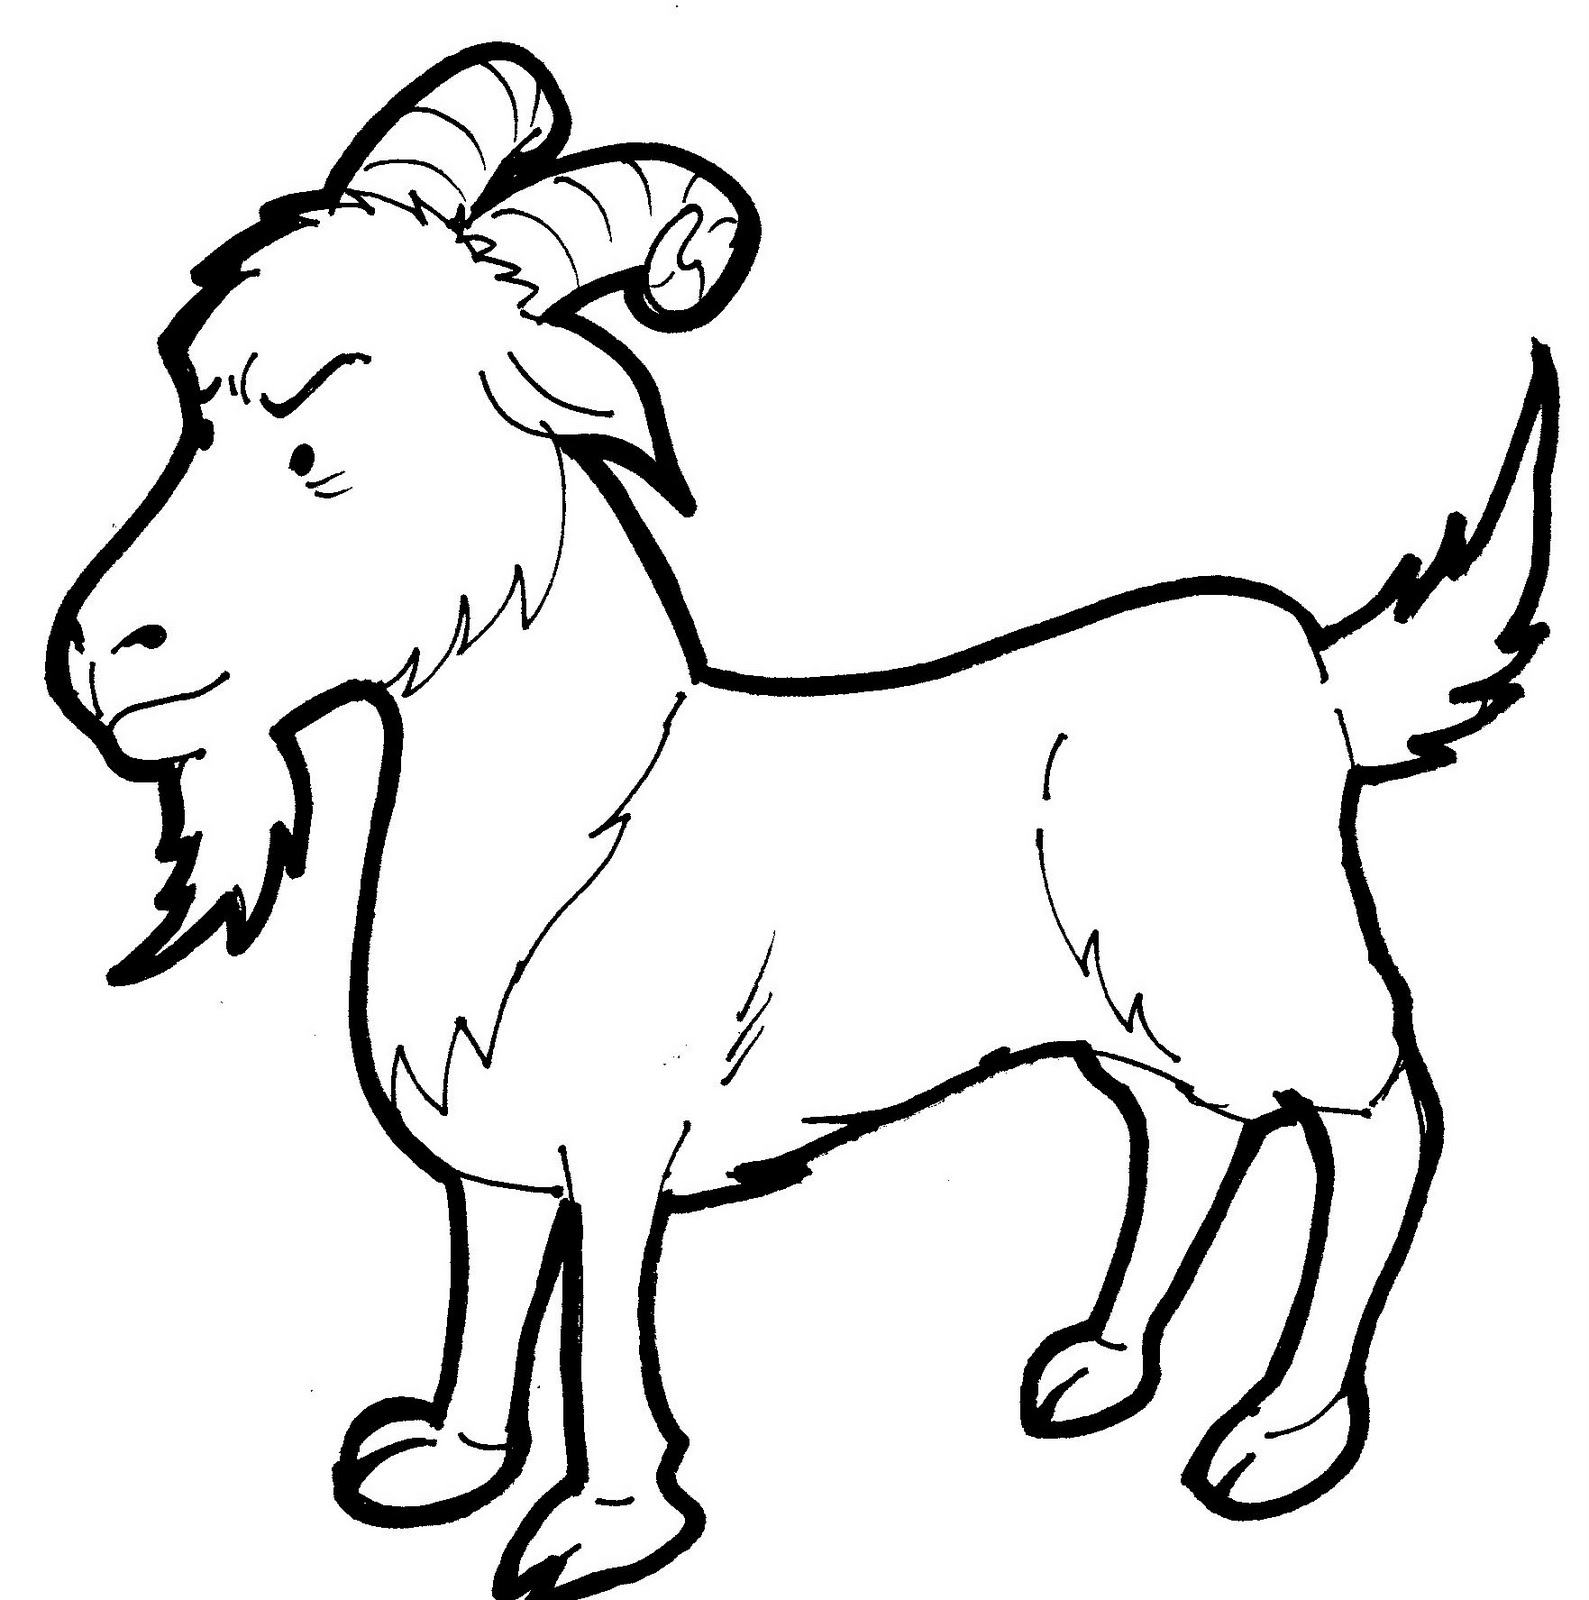 Vintage Fashion Coloring Page as well Other Goat Drawings further Desenhos De Cabras Para Colorir in addition Coloring Cartoon Animals together with Goat Coloring Pages. on goat coloring pages